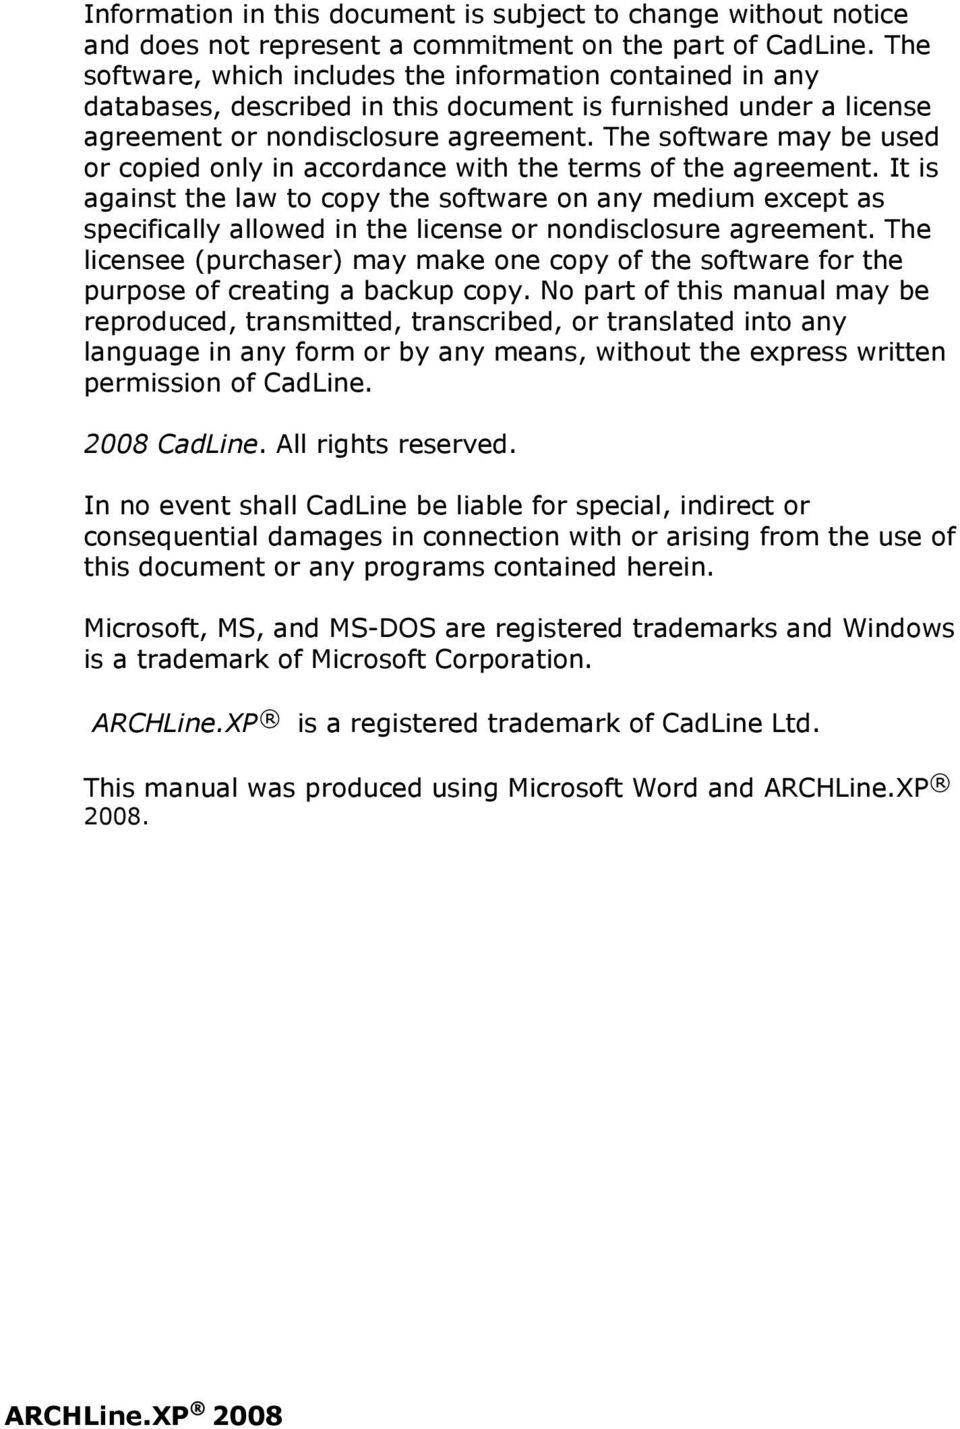 The software may be used or copied only in accordance with the terms of the agreement.